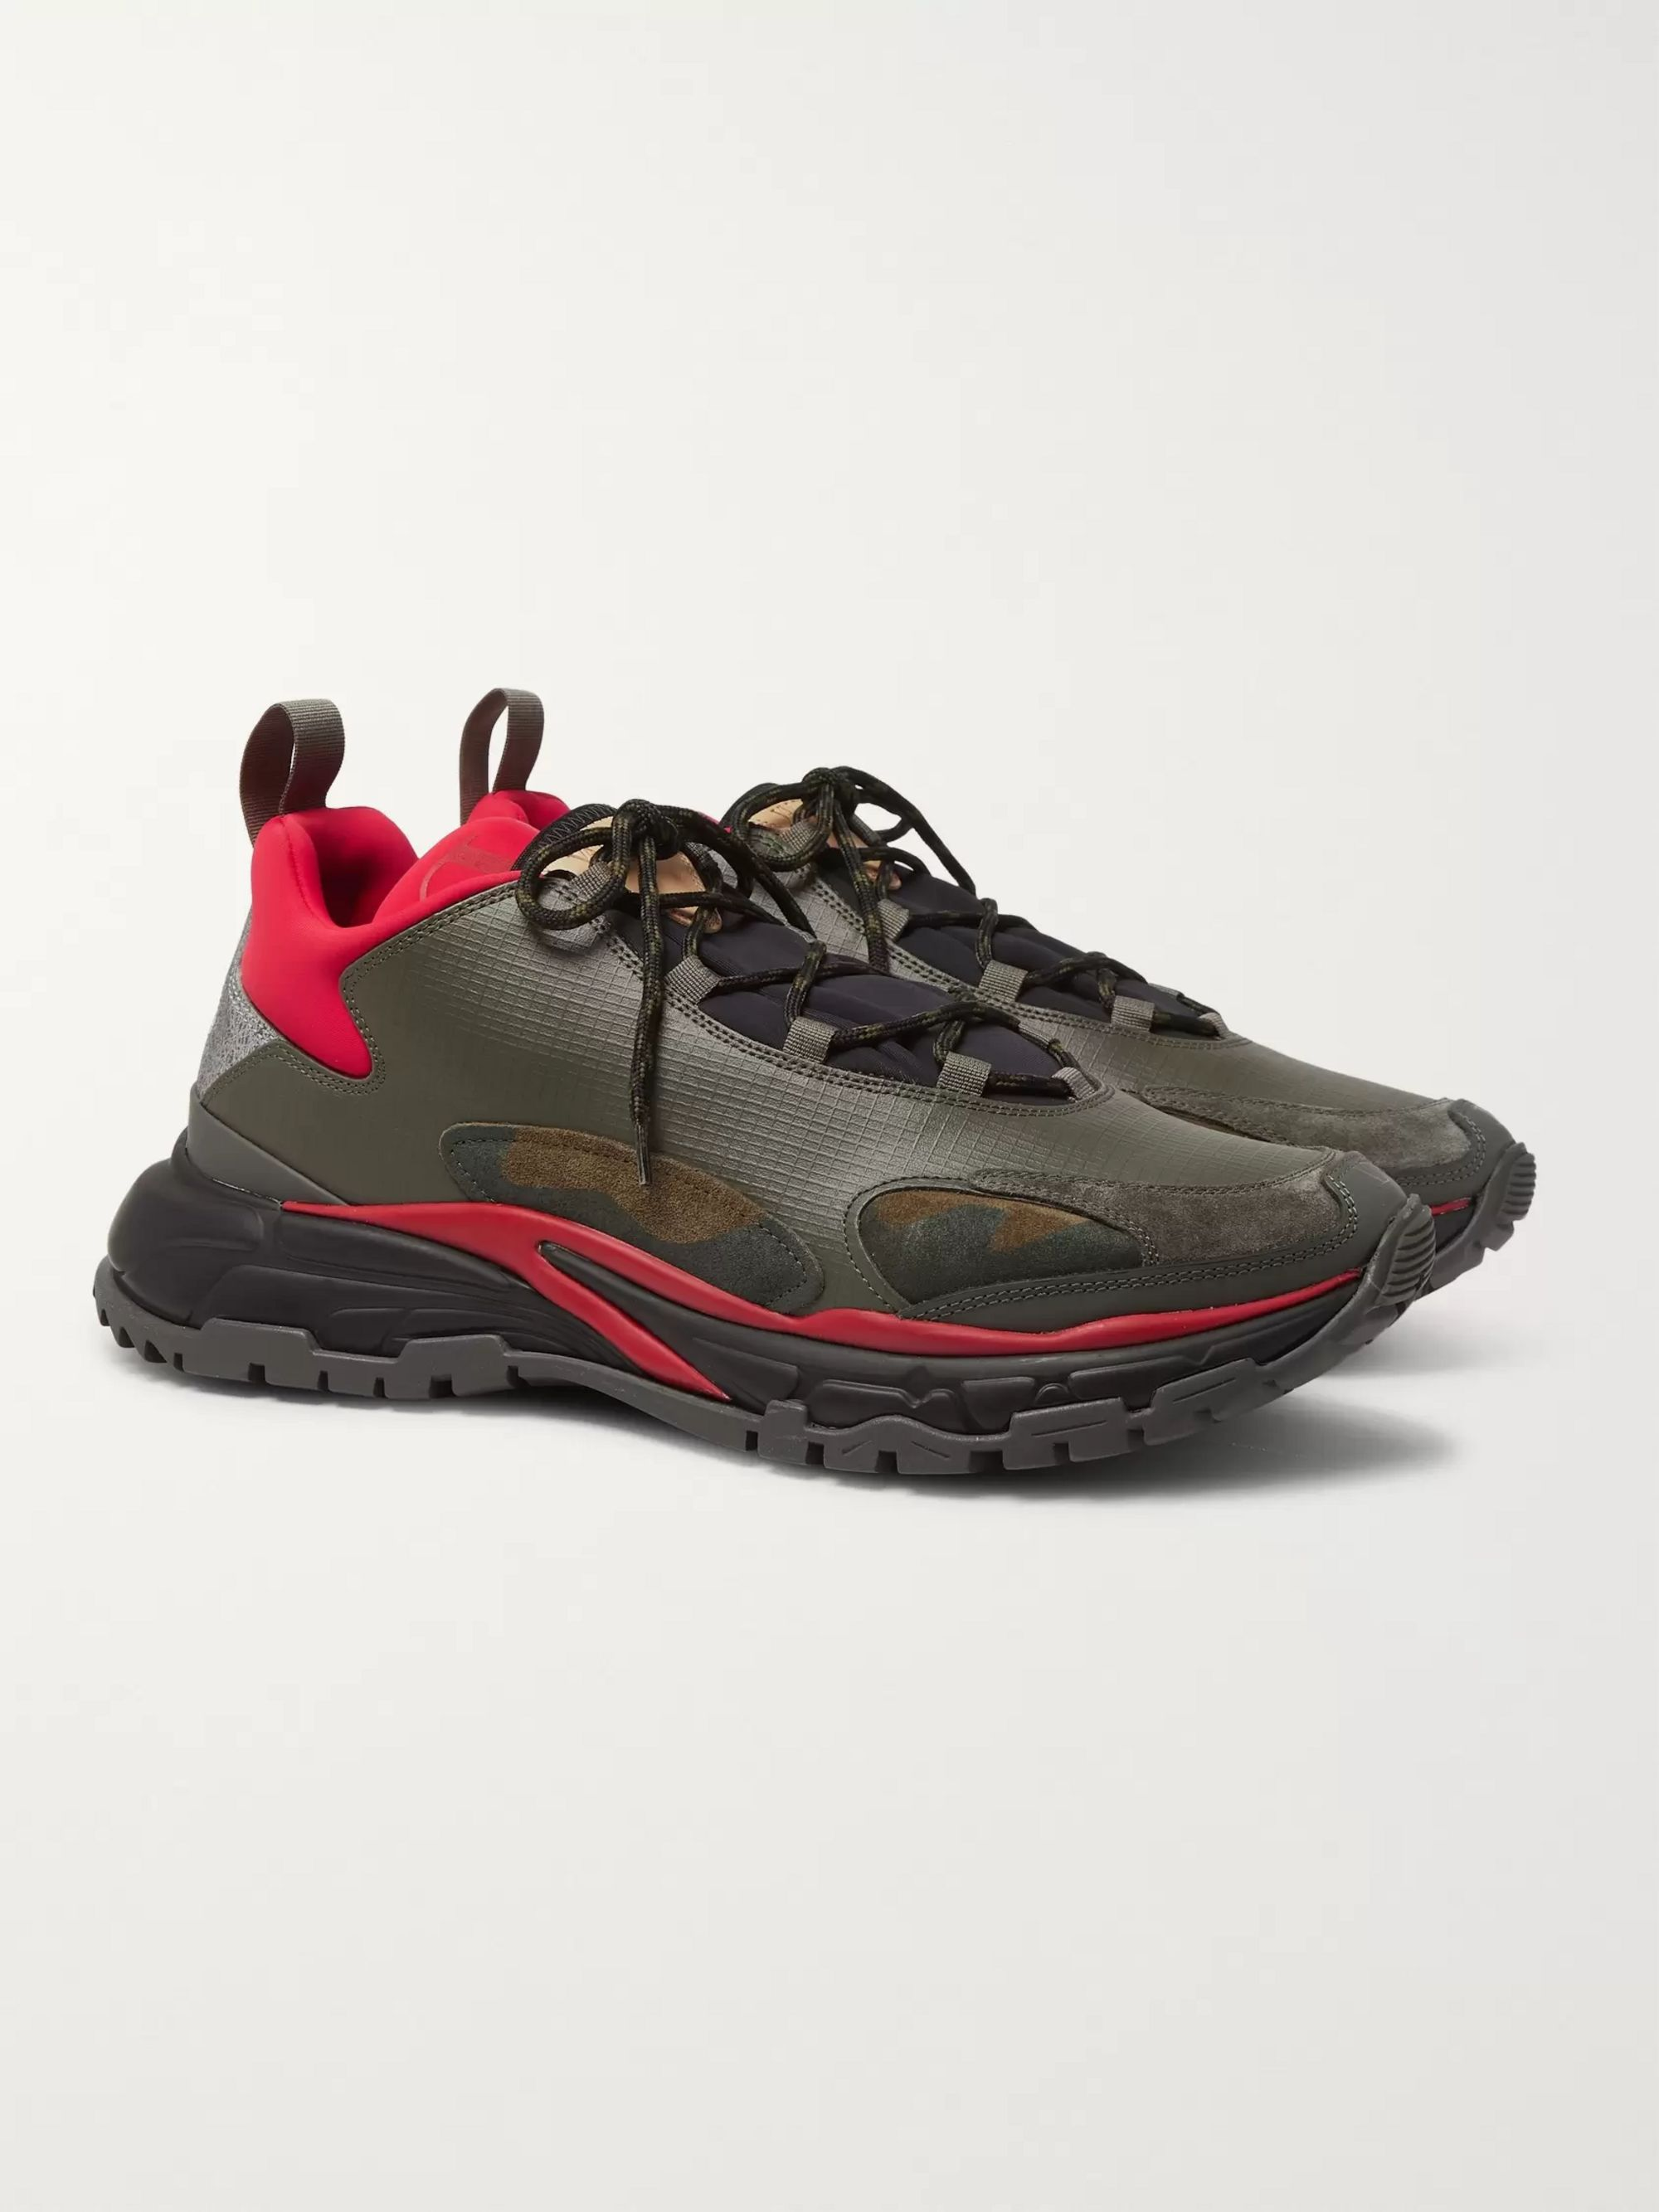 Valentino Valentino Garavani Trekking Leather, Suede and Neoprene Sneakers